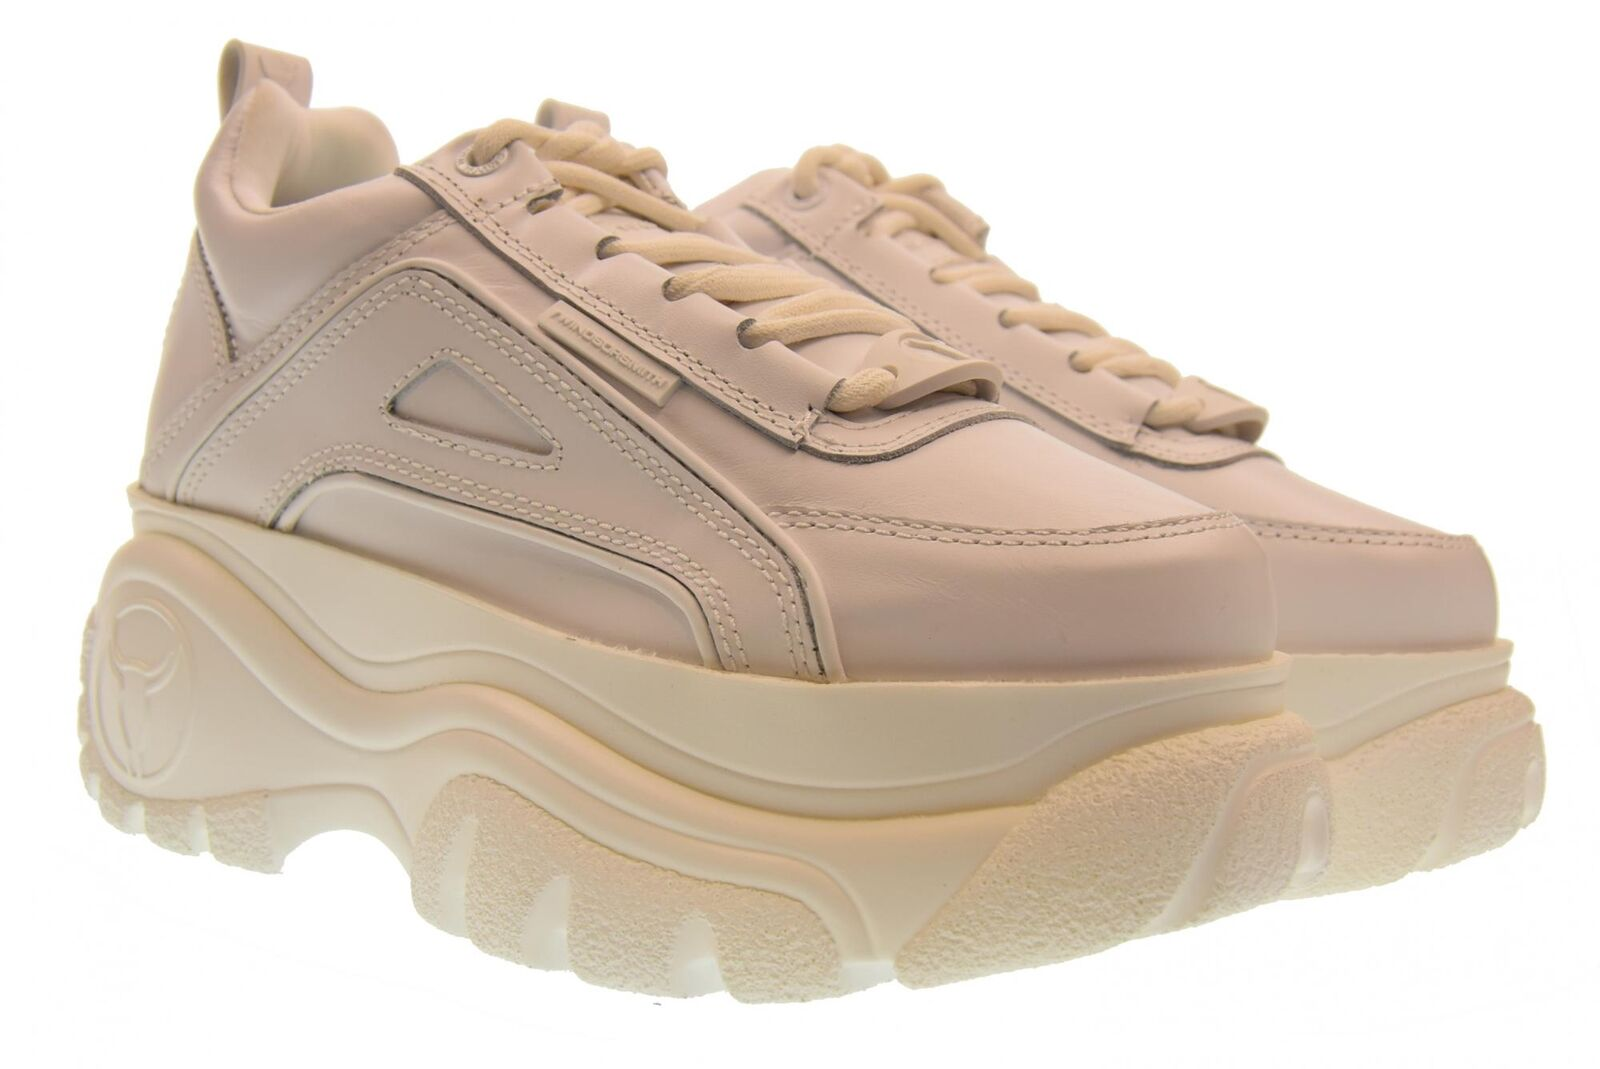 Windsor Smith A18us sneakers woman shoes with LUPE BIANCO platform